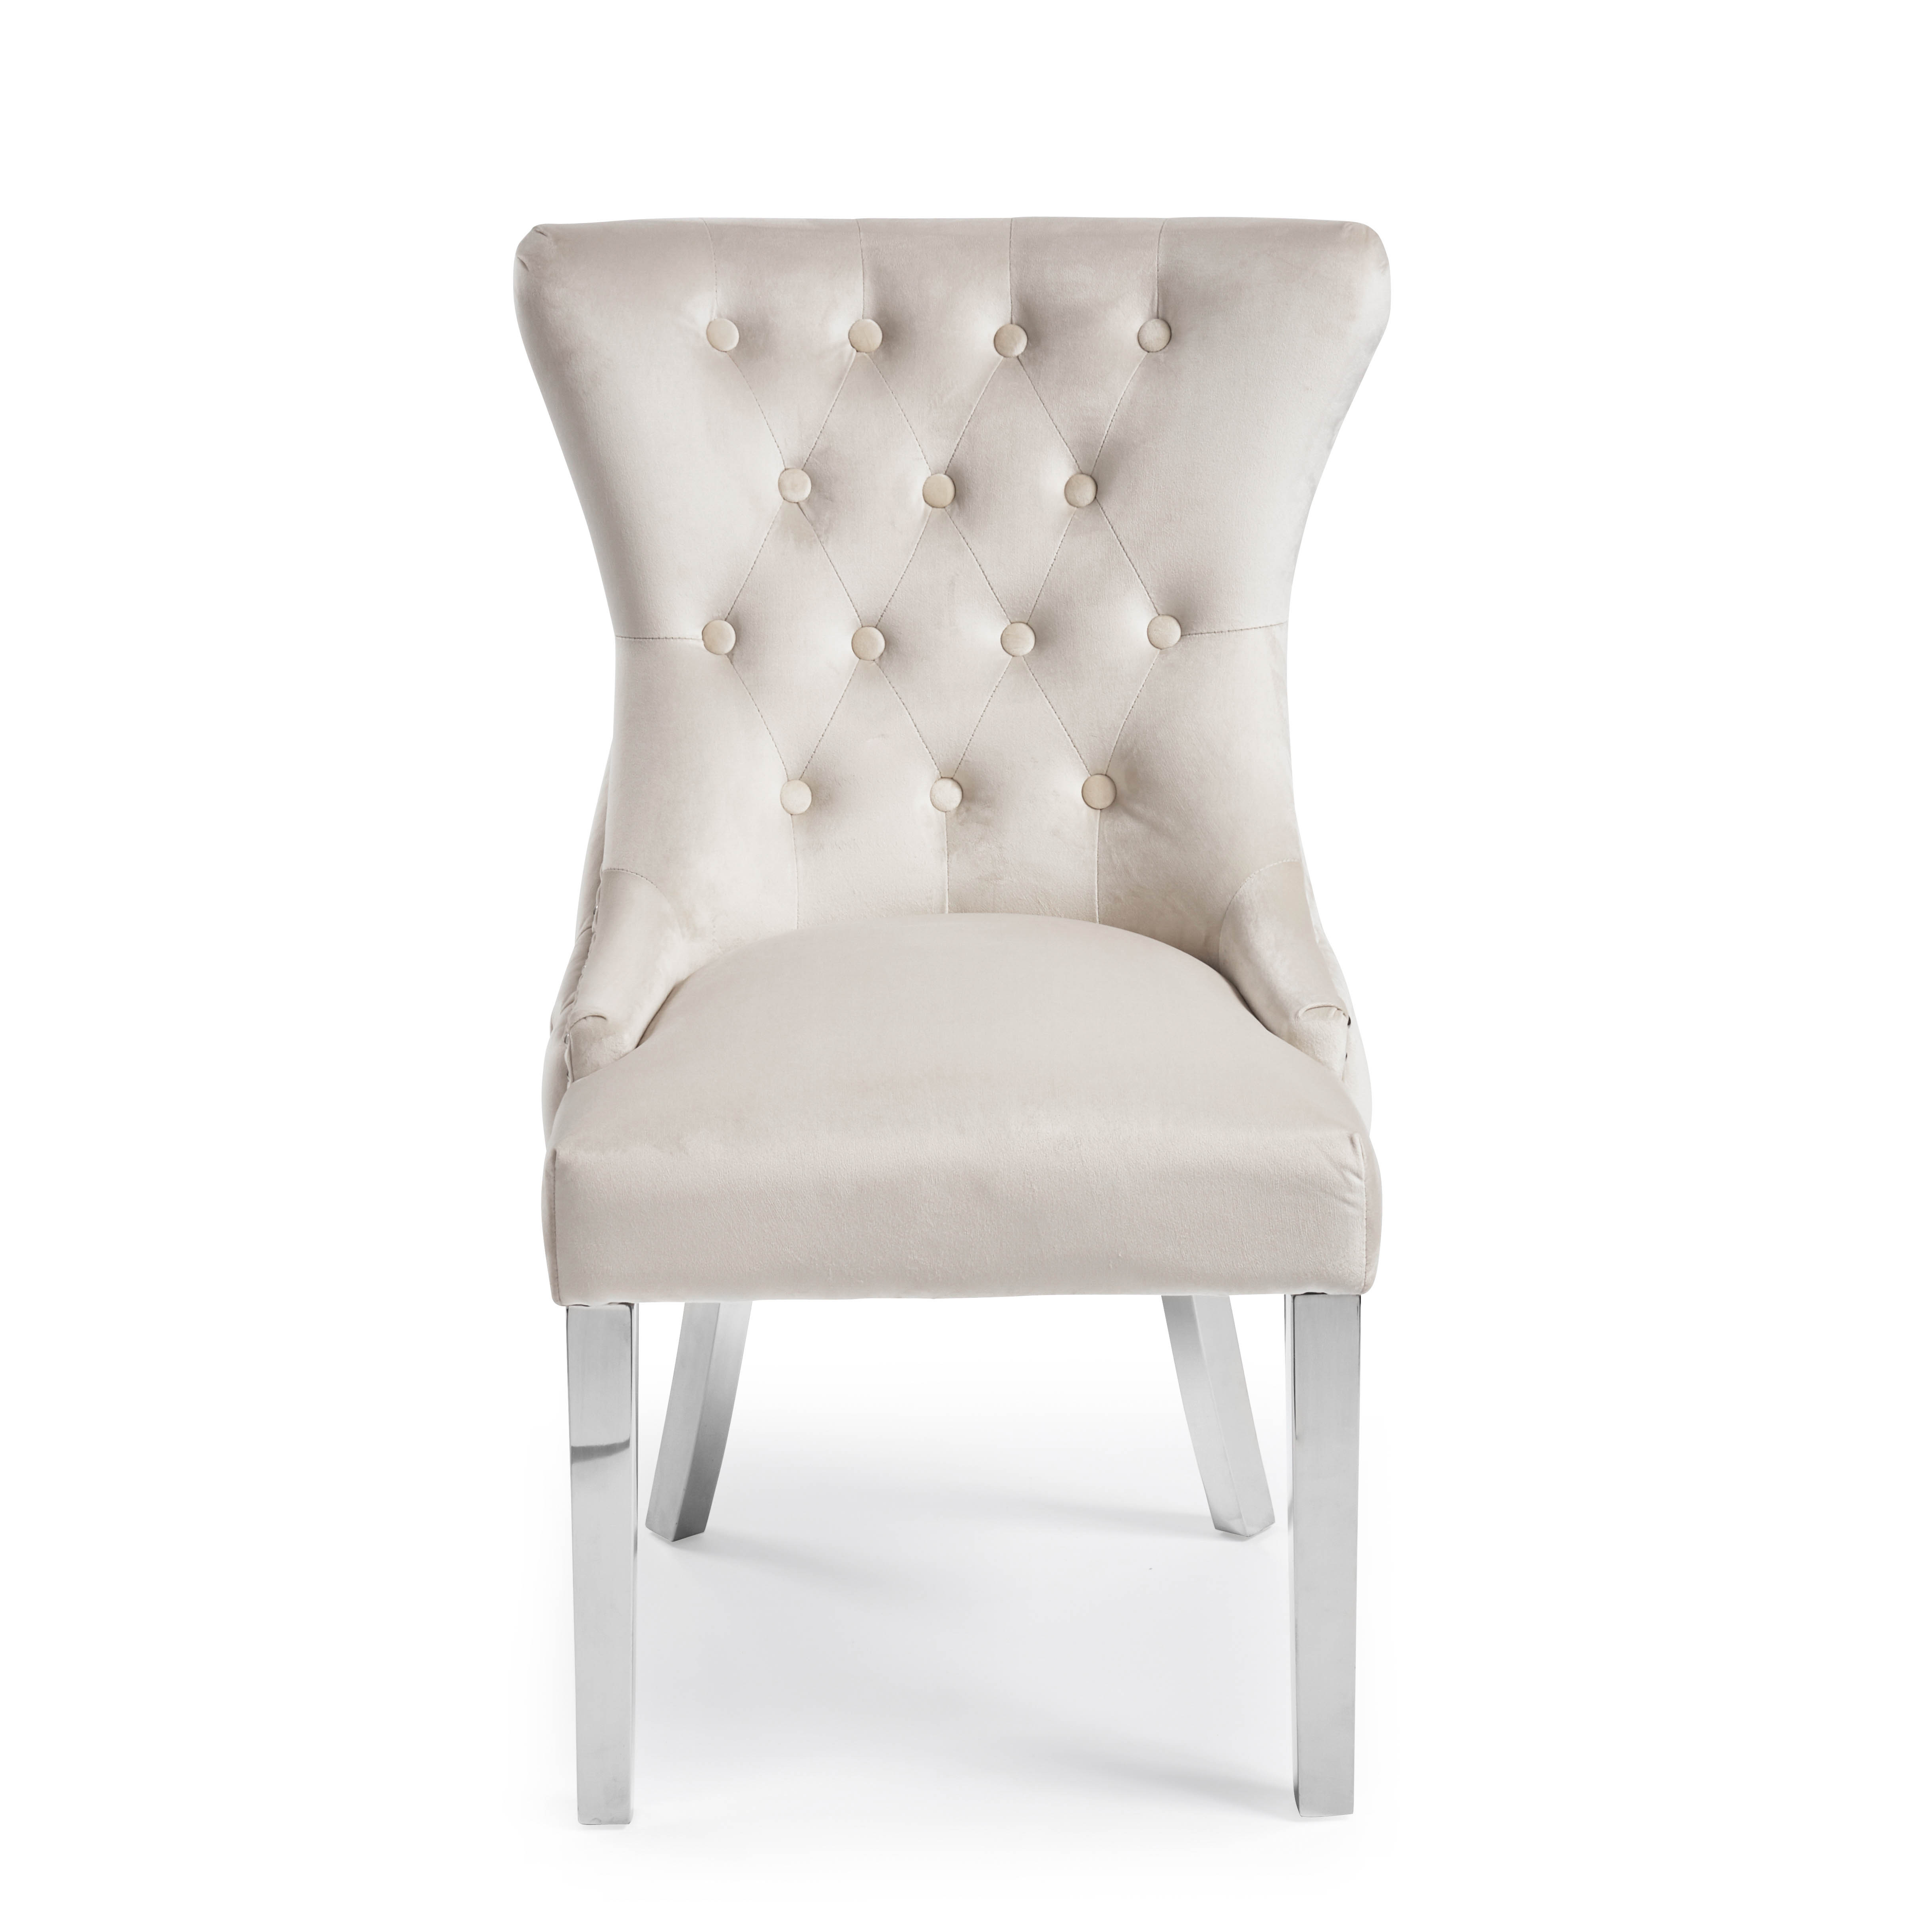 Knightsbridge Buttoned Brushed Velvet Dining Chair with Polished Stainless Steel Legs – Cream